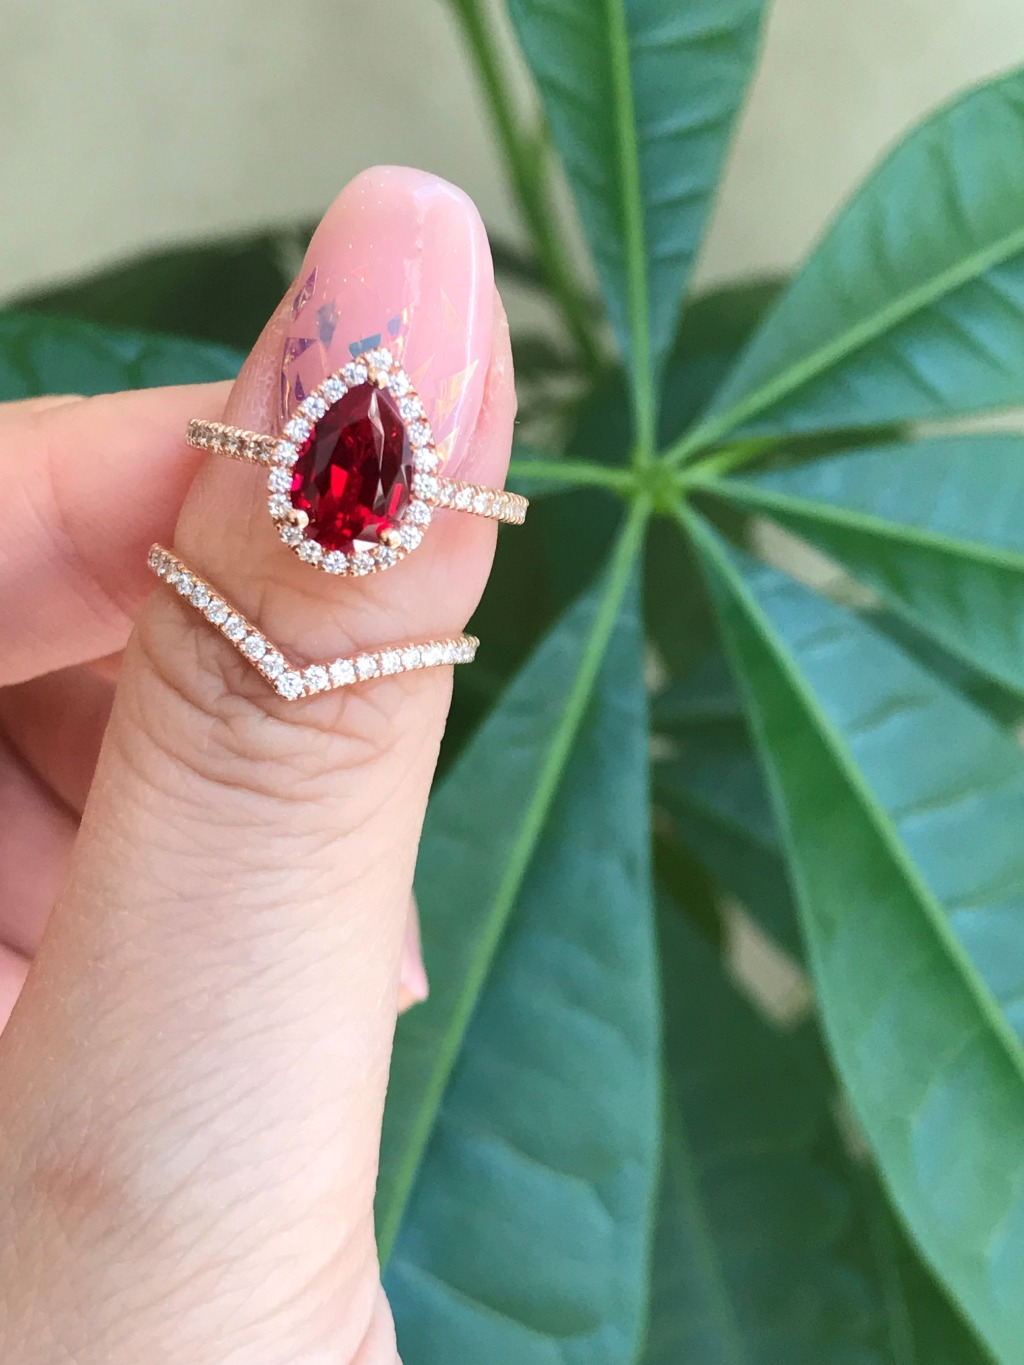 This stunning bridal ring set features a 9x6mm Pear Cut Ruby surrounded by sparkling conflict free natural white diamonds set in 14k